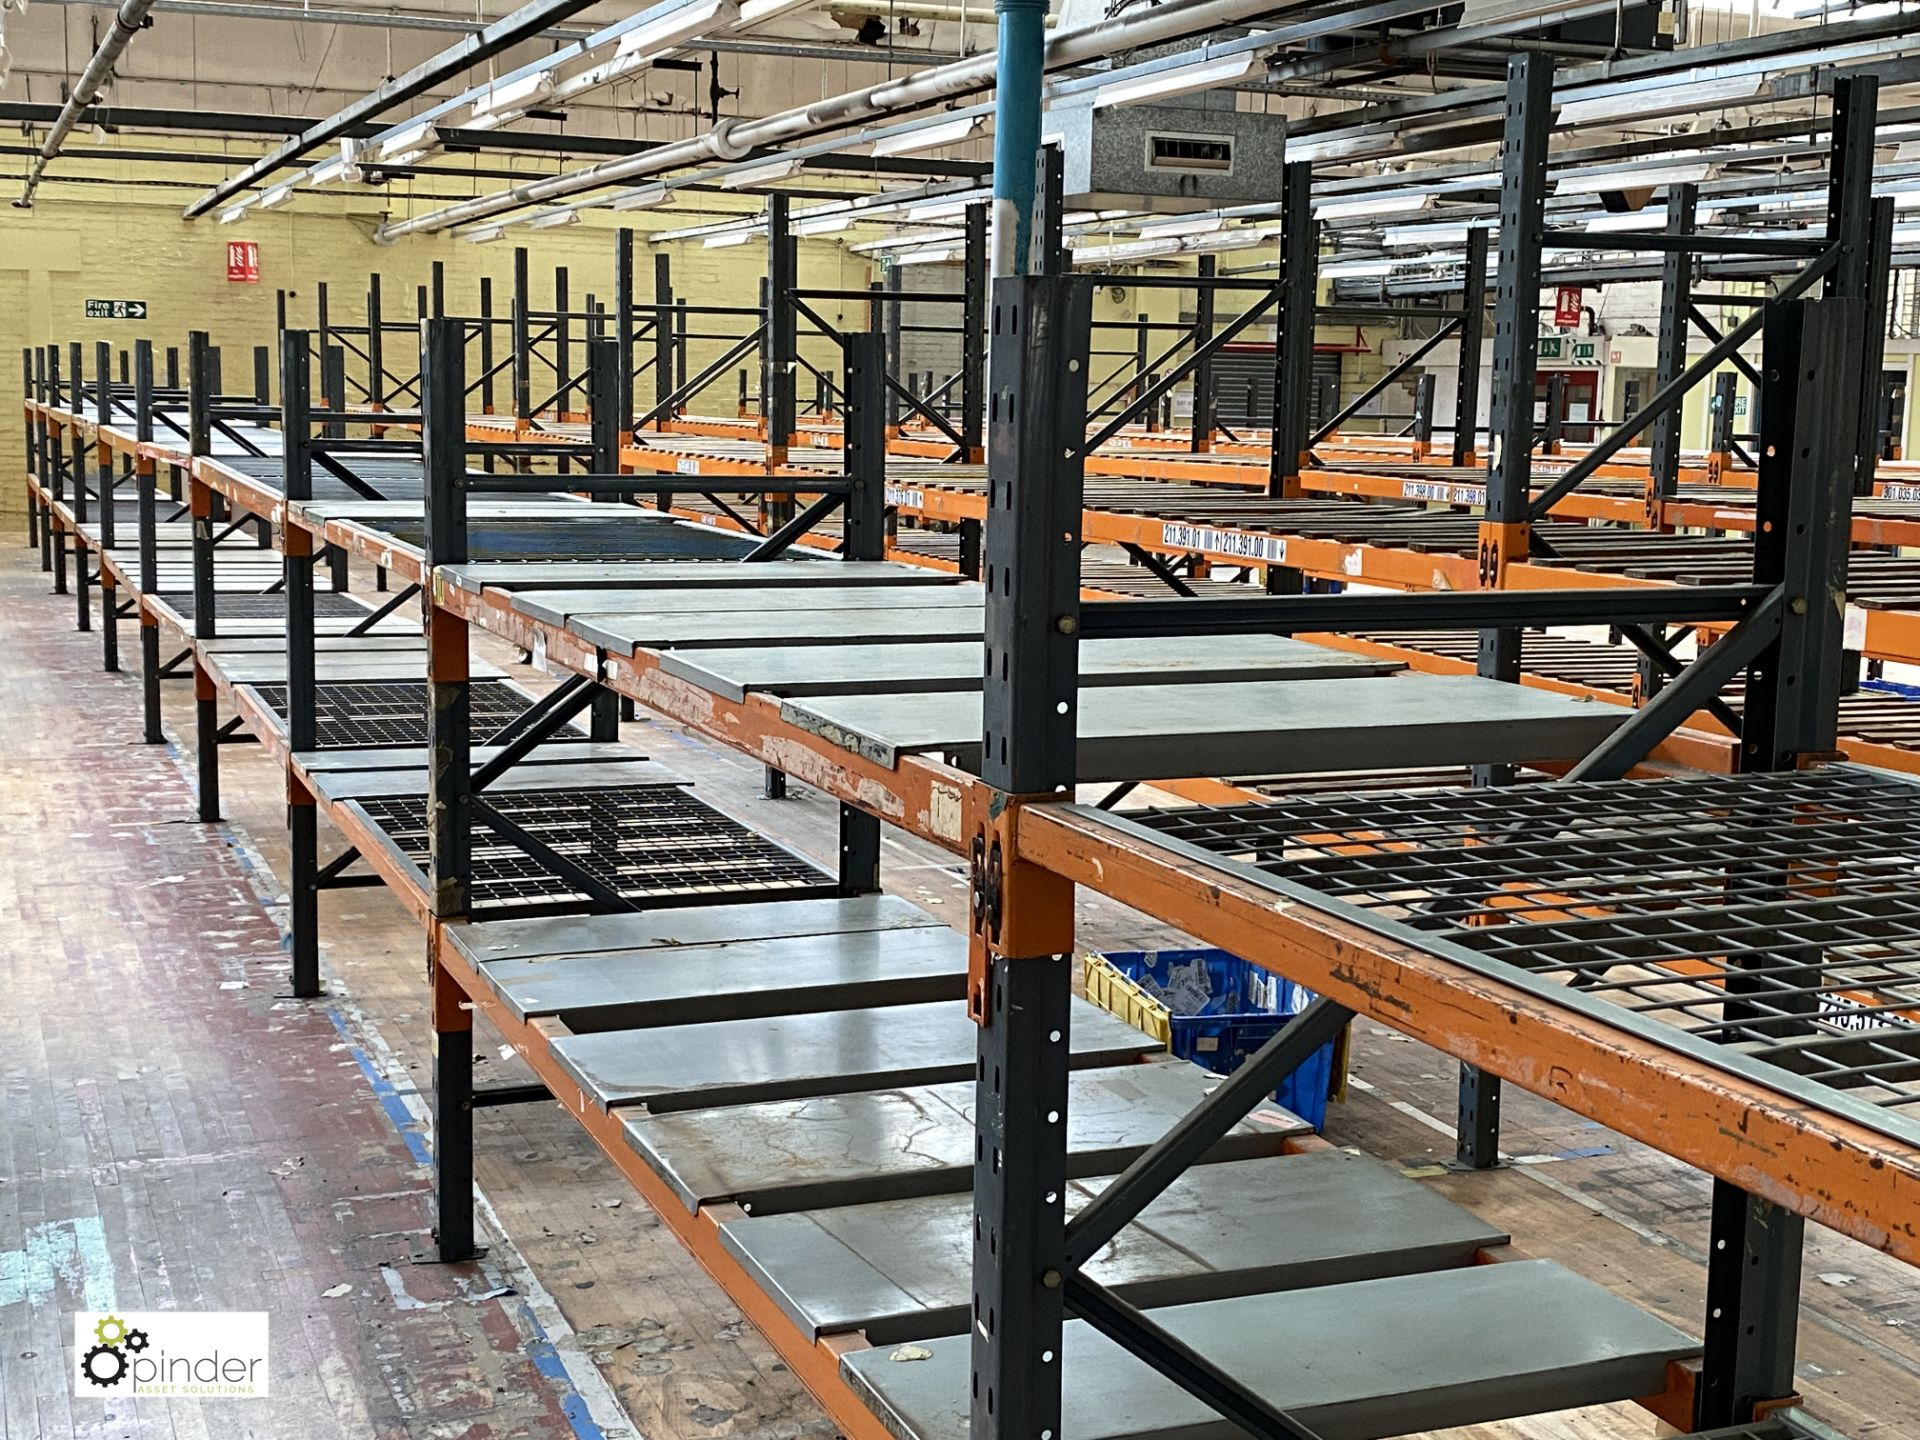 12 bays Dexion Speedlock boltless Racking, comprising 12 uprights 1835mm x 910mm, 1 upright 2440mm x - Image 4 of 4